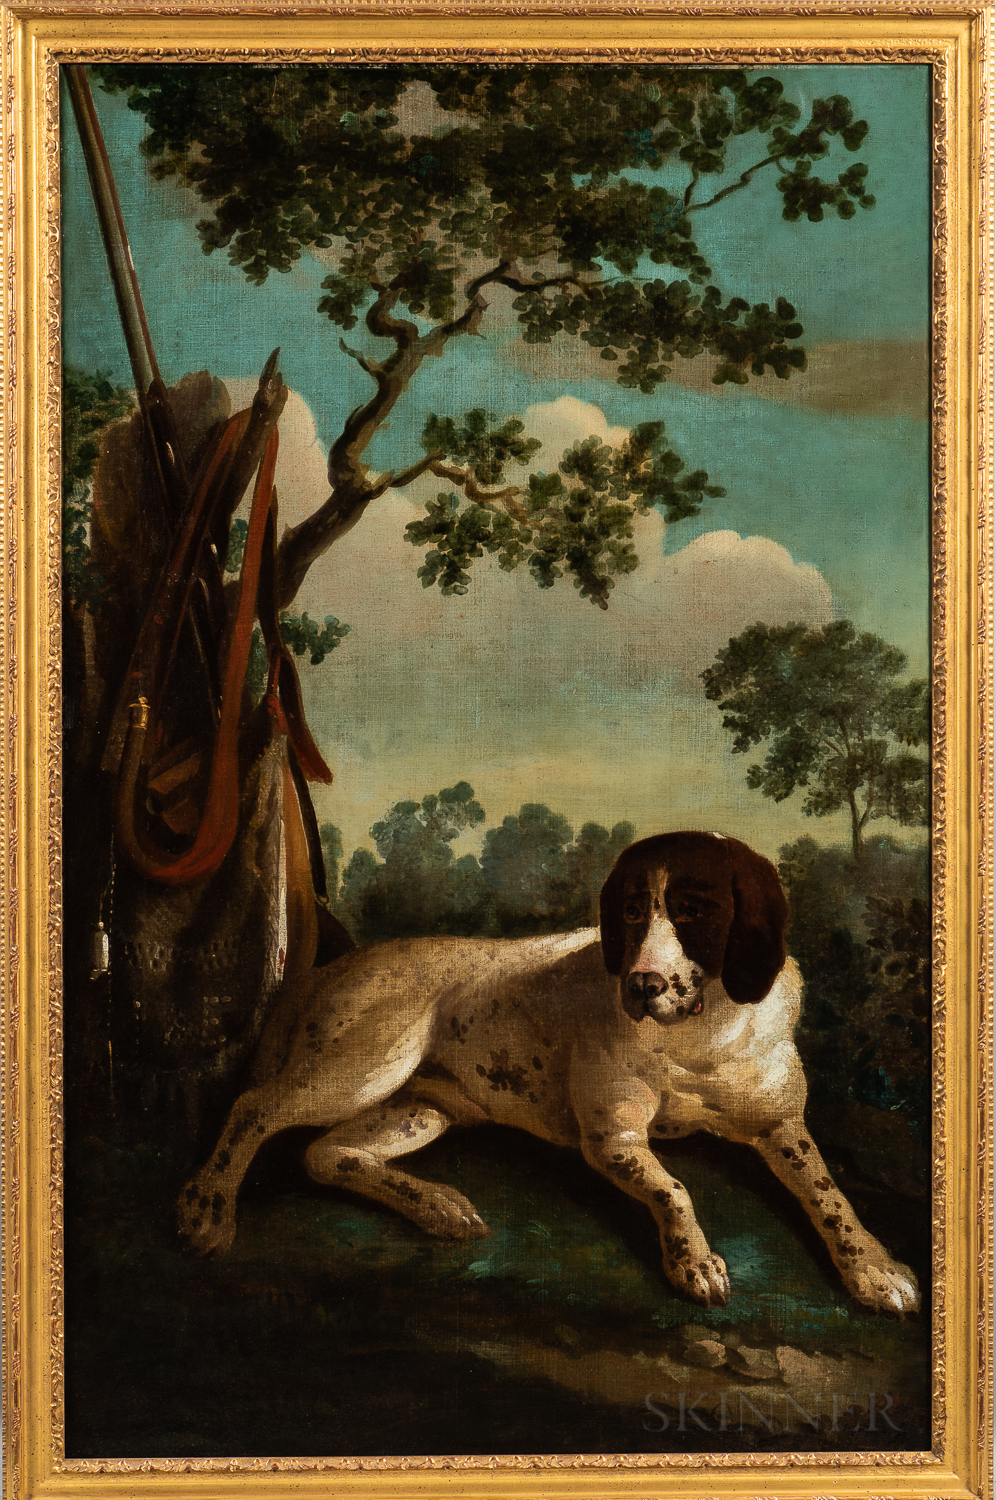 Anglo/Dutch School, 18th Century Style      Bird Dog with Hunter's Gear in a Landscape